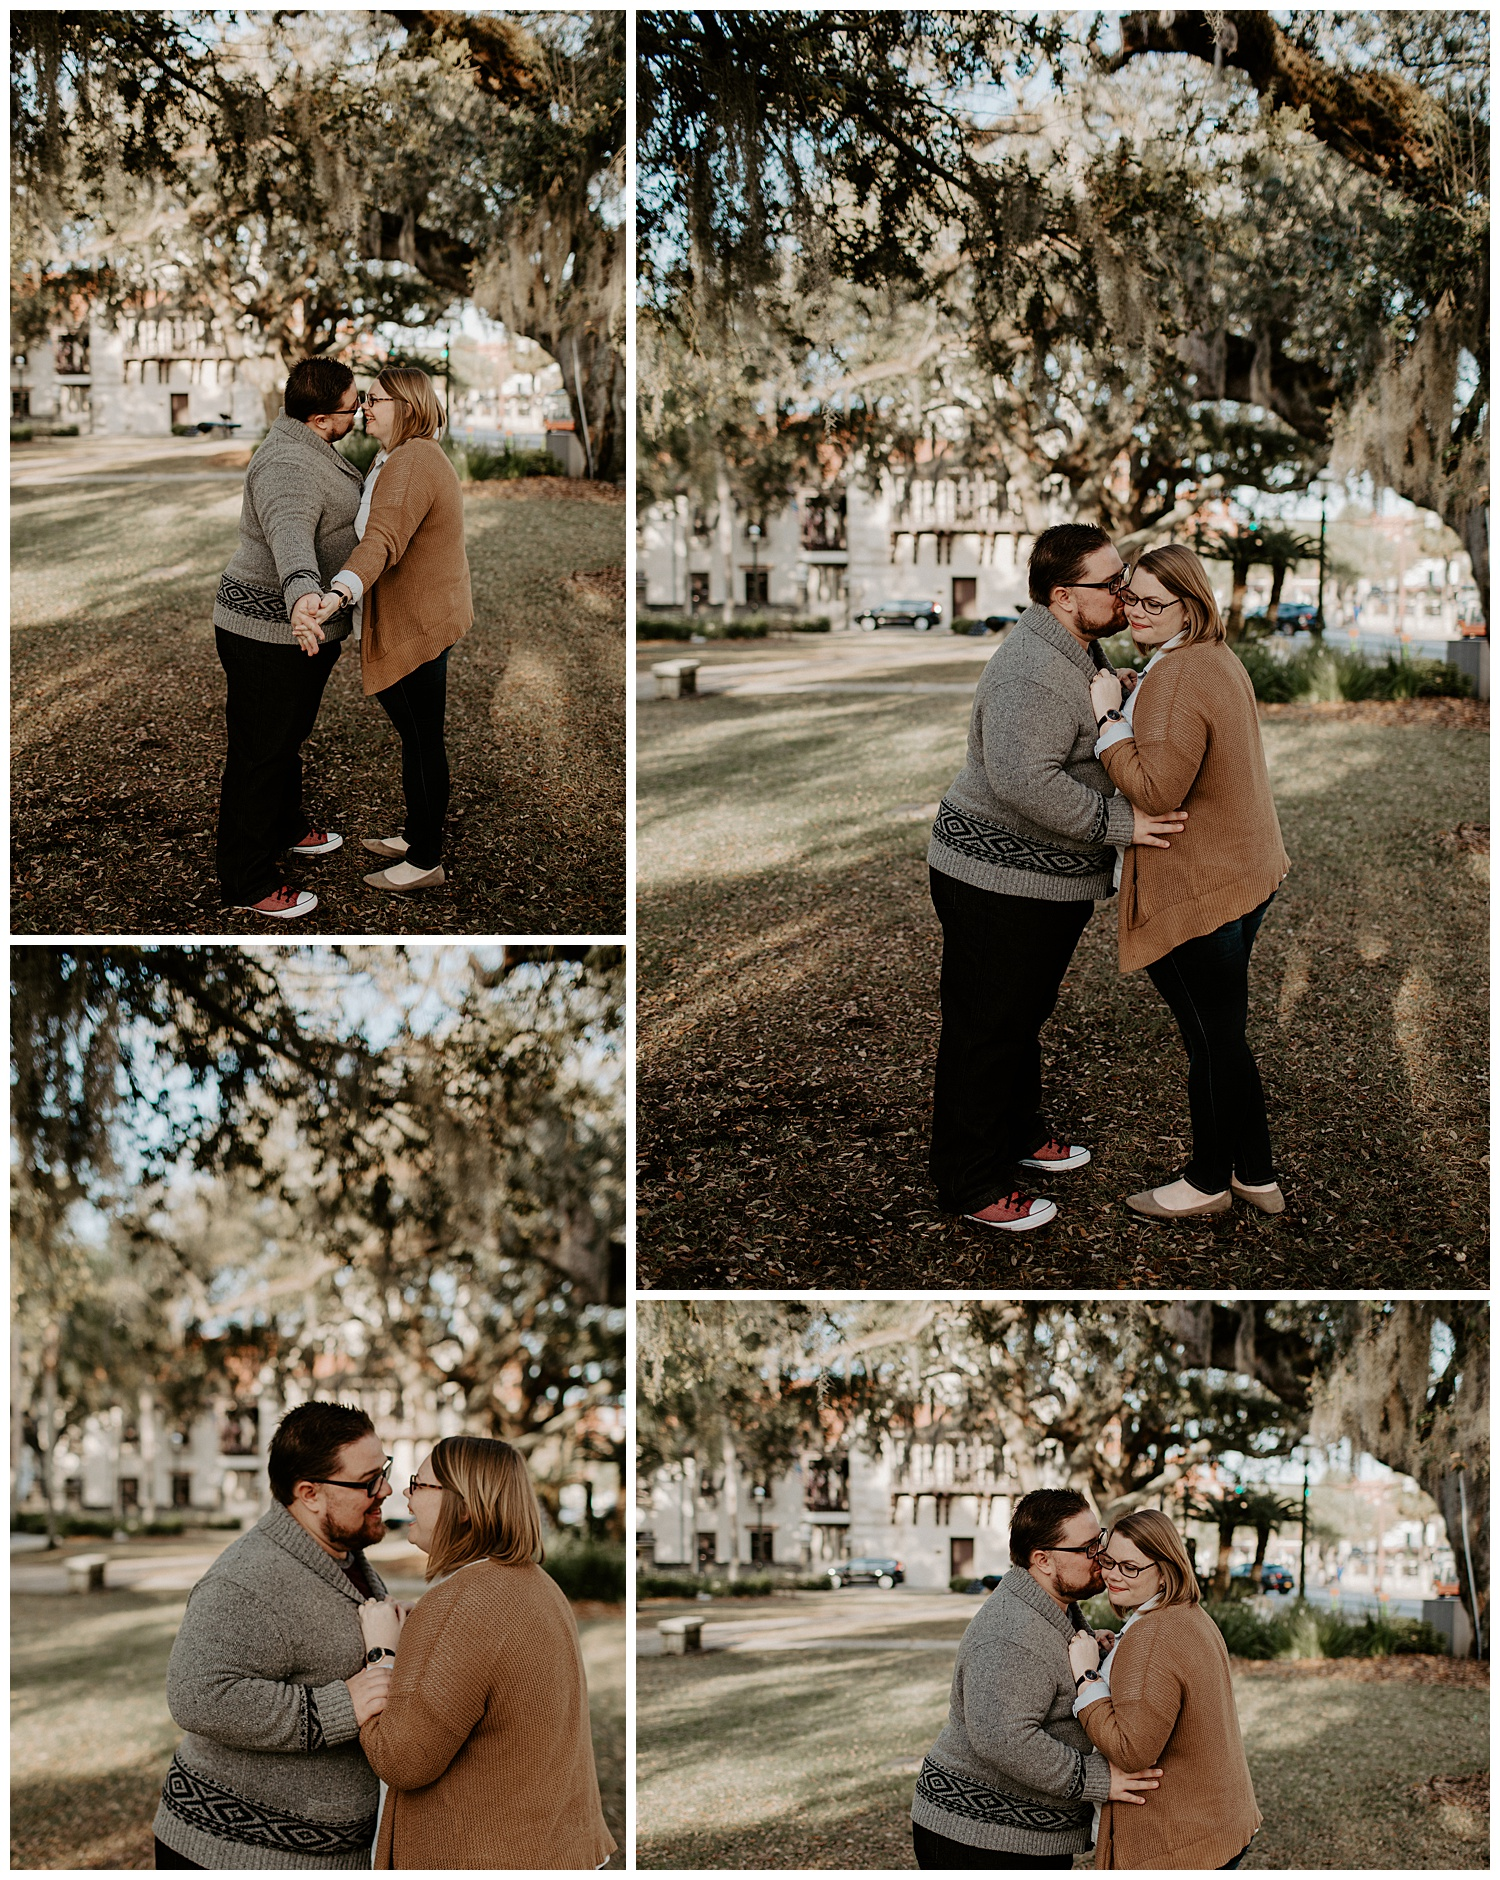 st.augustine-square-engagement-session-st.augustine-florida_0158.jpg